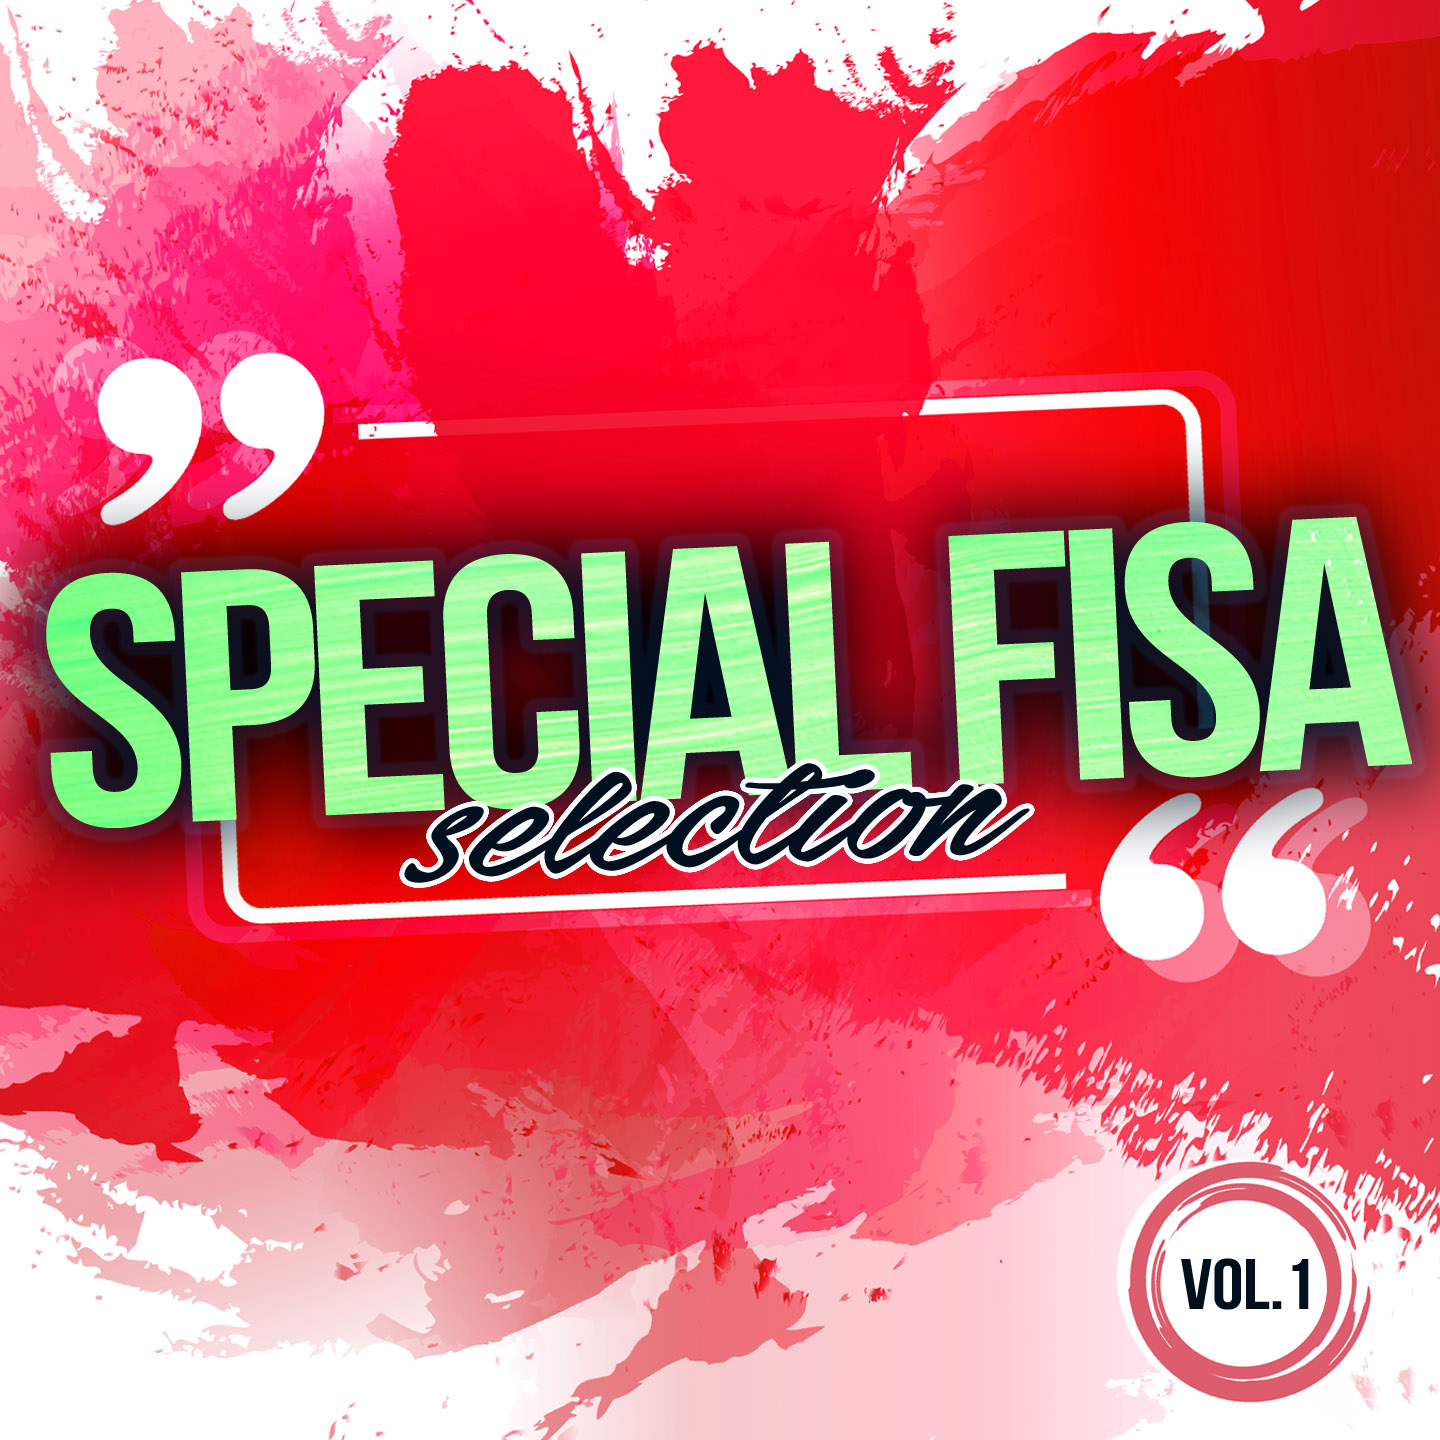 SPECIAL FISA SELECTION -1 copia